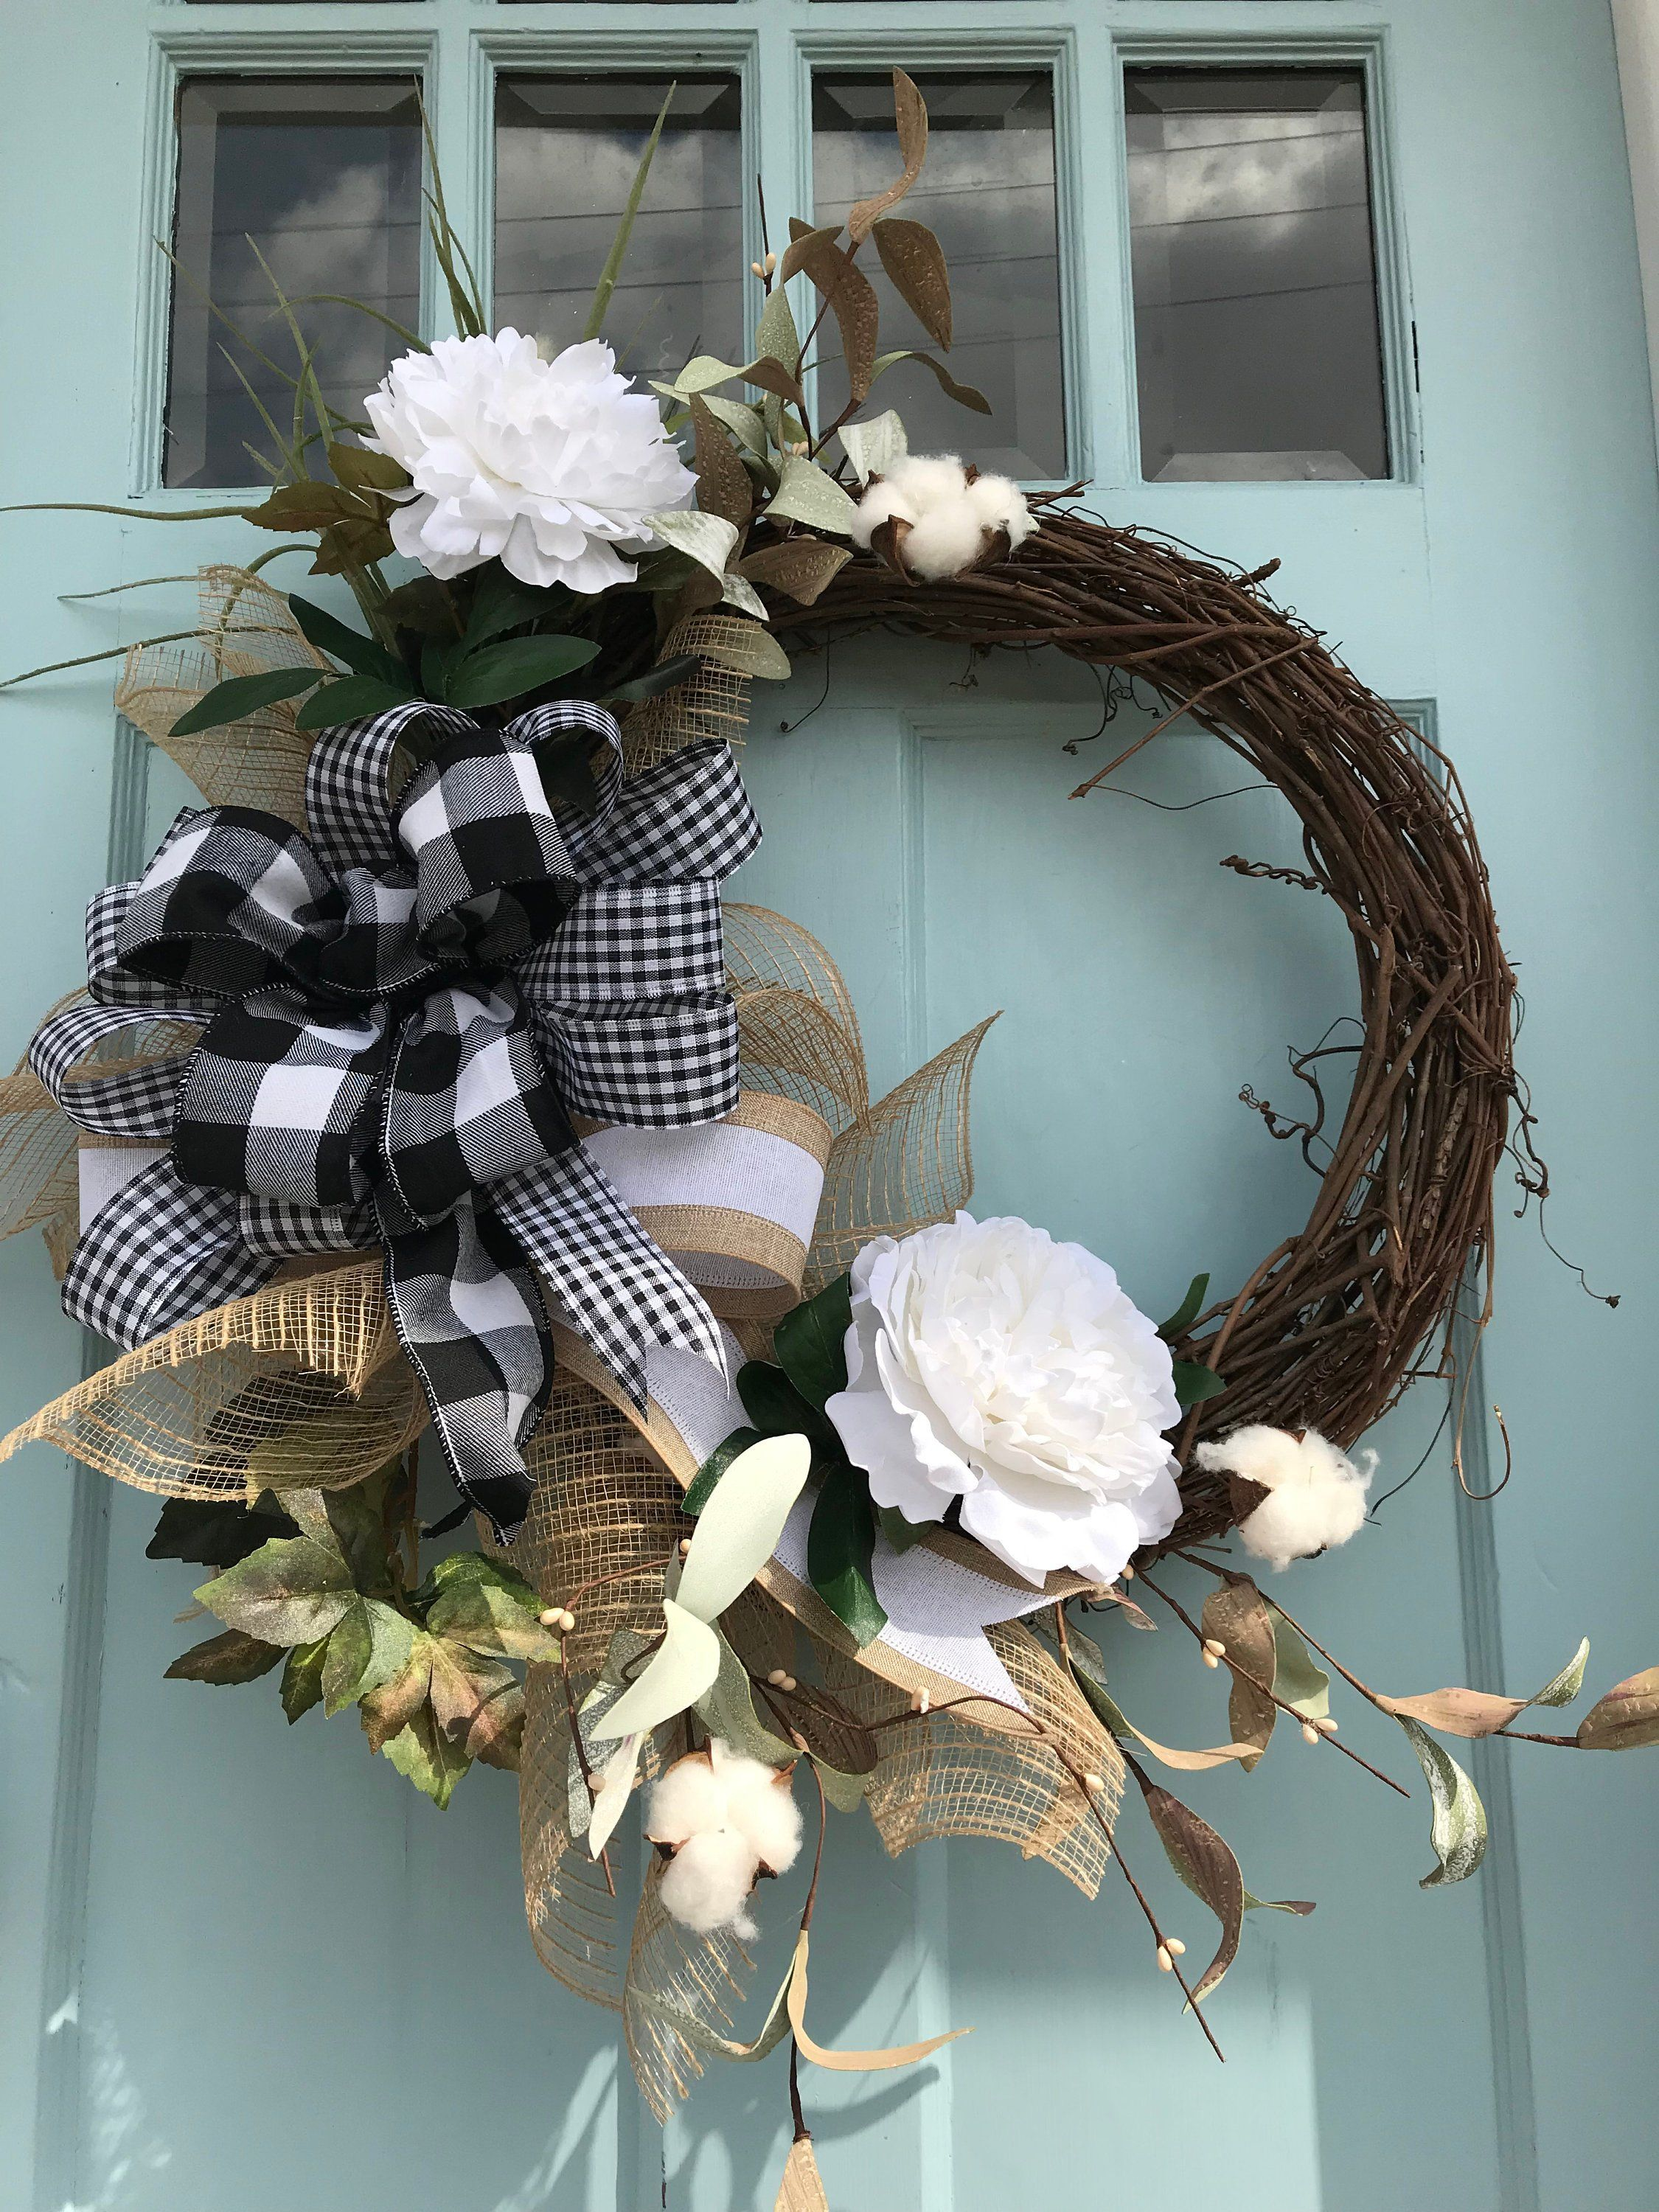 Beautifully Elegant White Floral Grapevine Wreath For Door Wreaths Wreaths For Front Door Farmhouse C Wreath Decor Grapevine Wreath Wreaths For Front Door